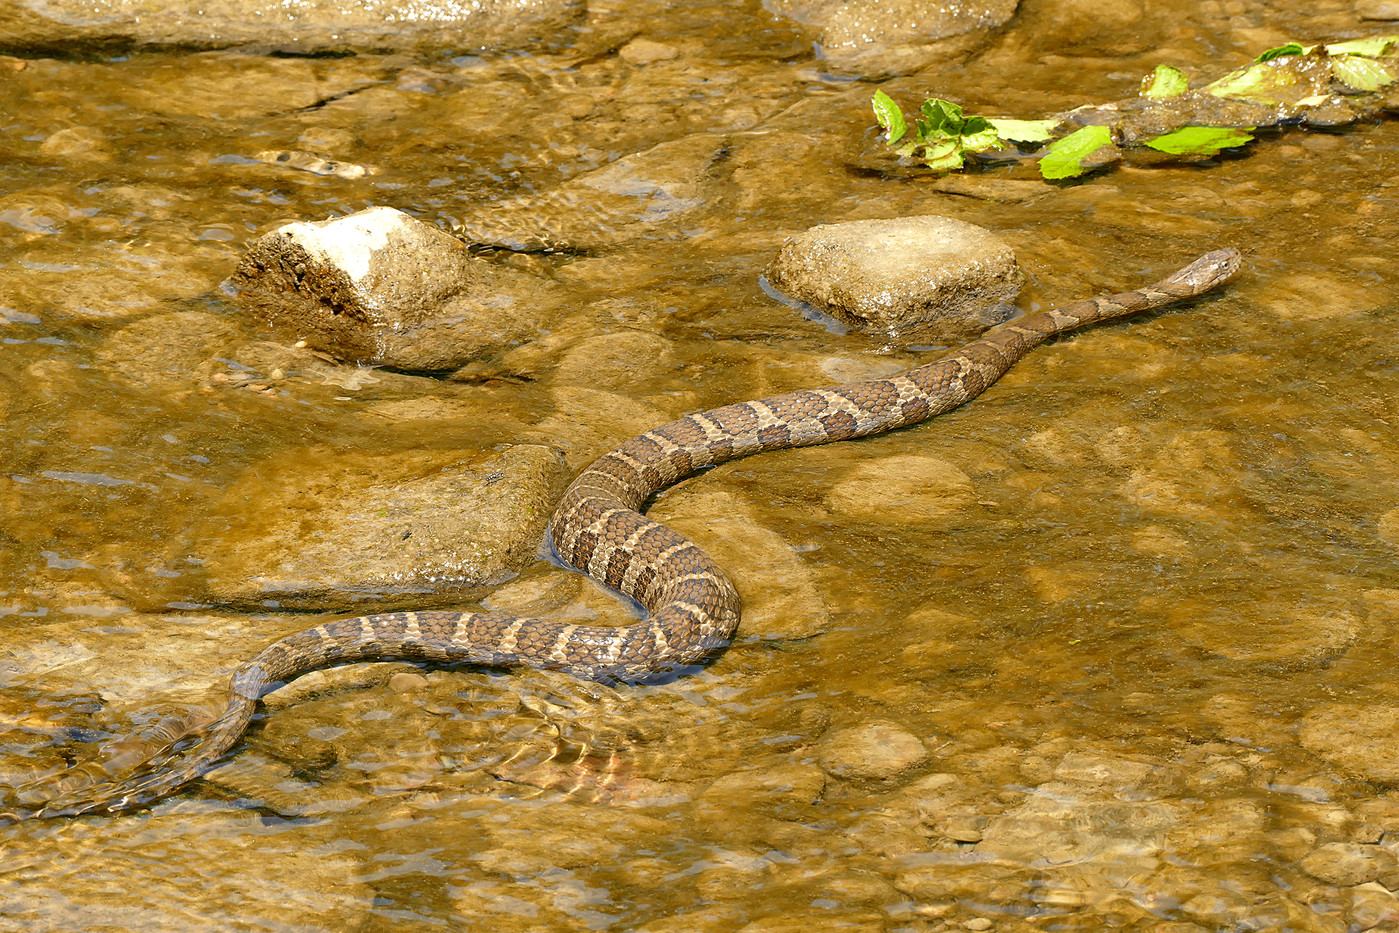 Northern Water Snake in Ohio, USA